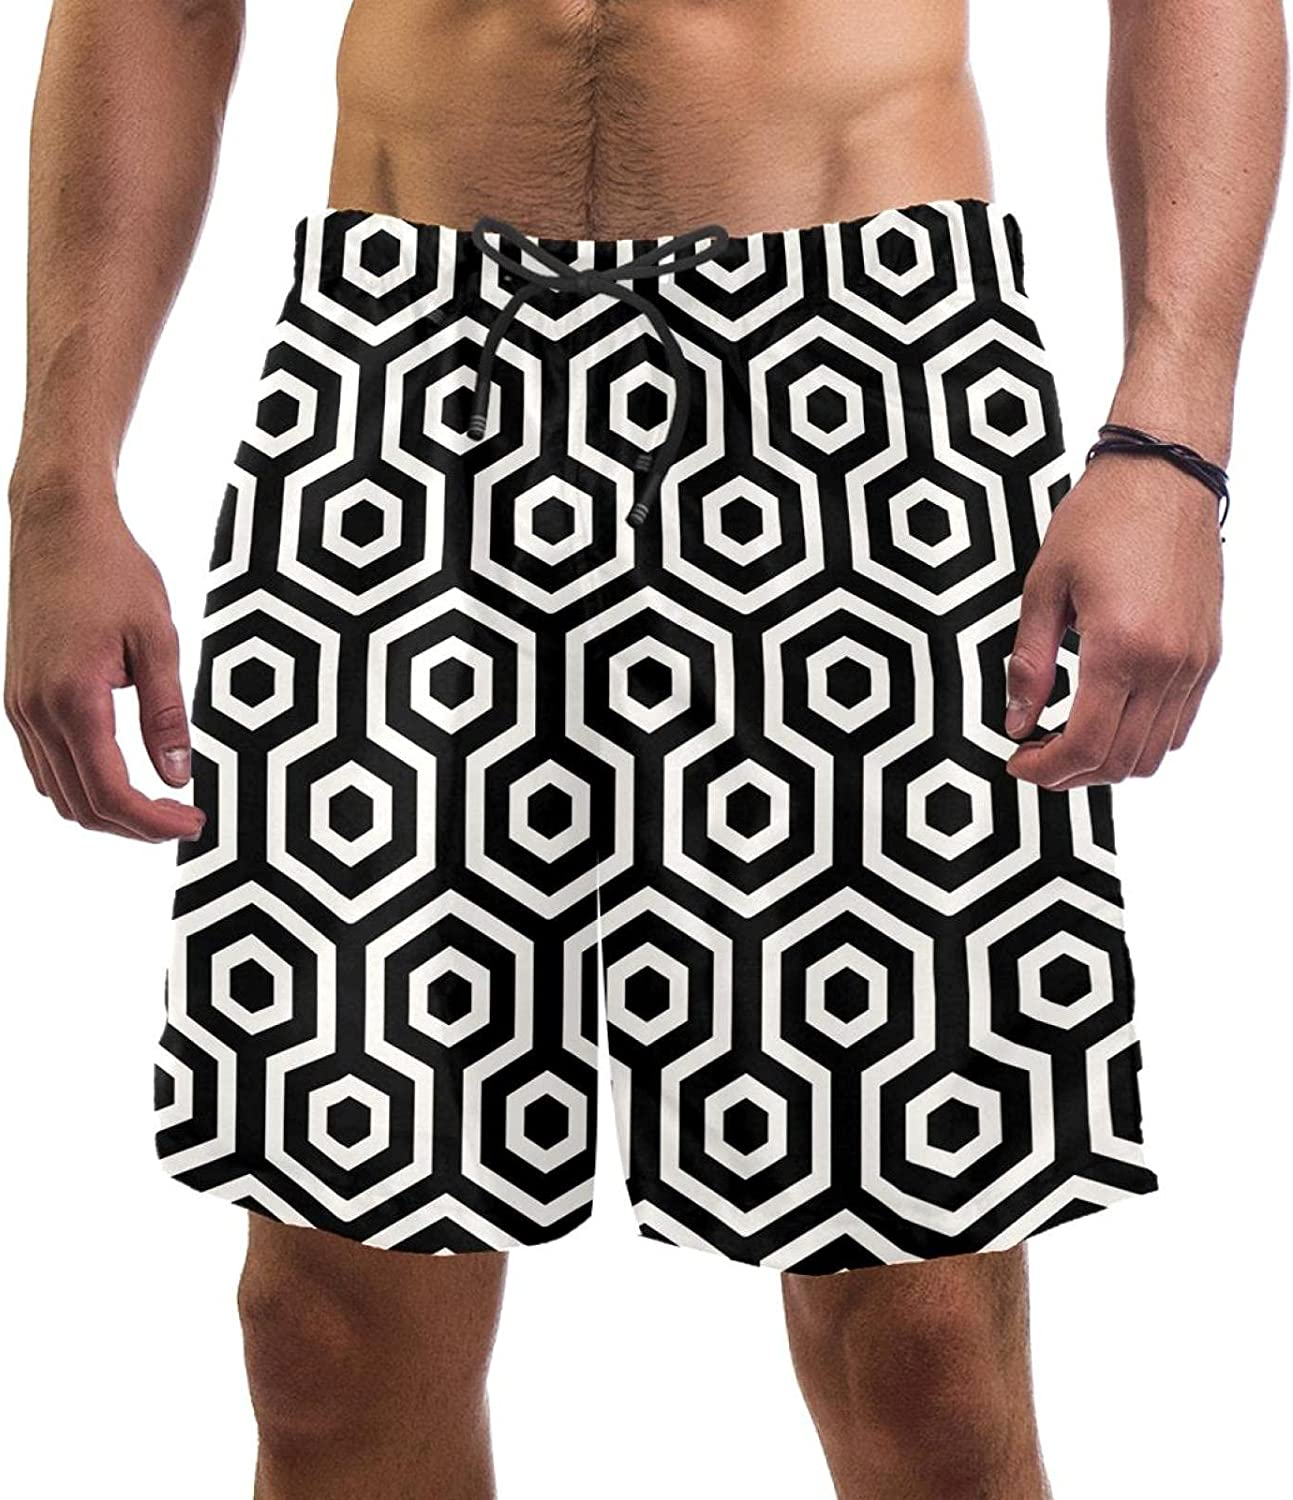 Wanlipous Men's Beach Shorts Black Super sale period Max 42% OFF limited Swi Quick Pattern Hexagon Dry